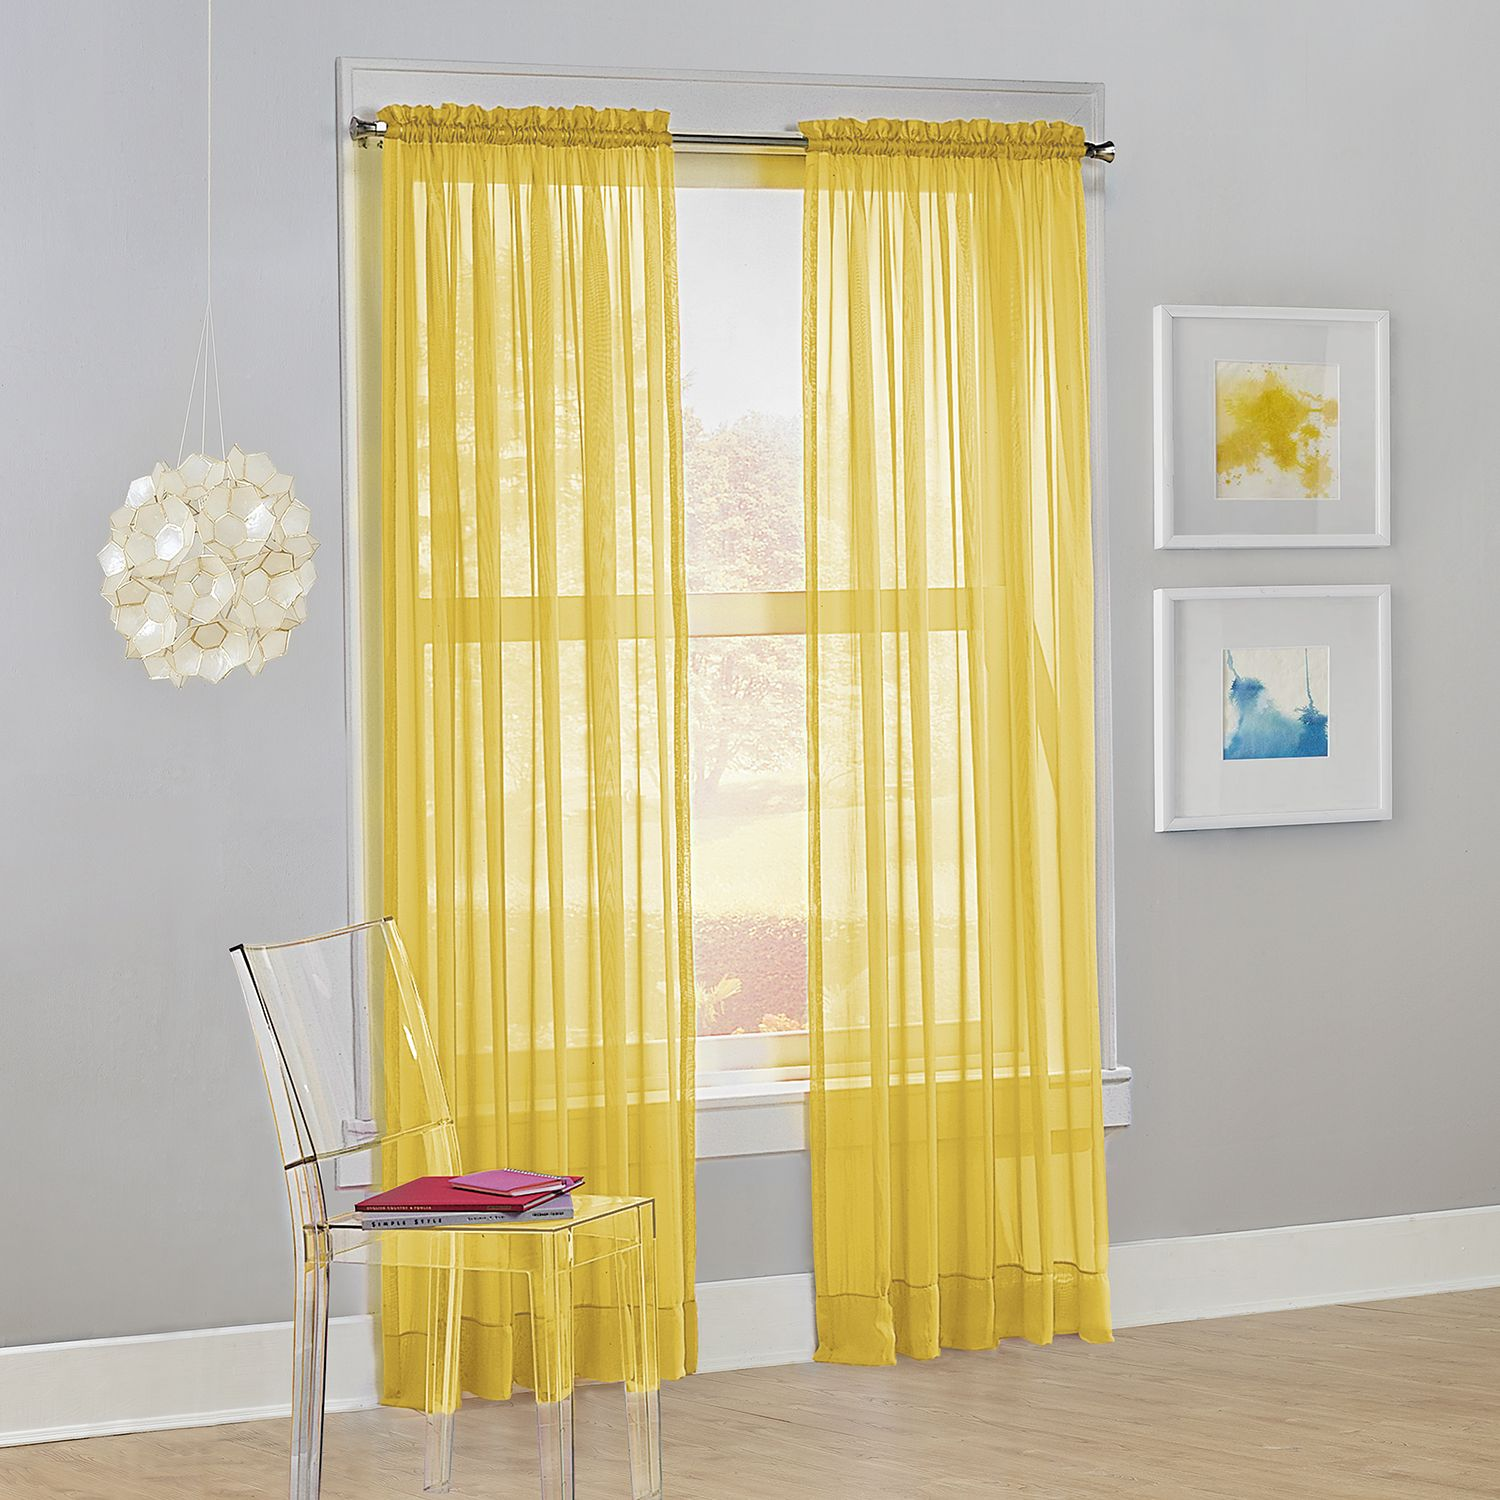 Yellow Sheers Curtains U0026 Drapes   Window Treatments, Home Decor | Kohlu0027s